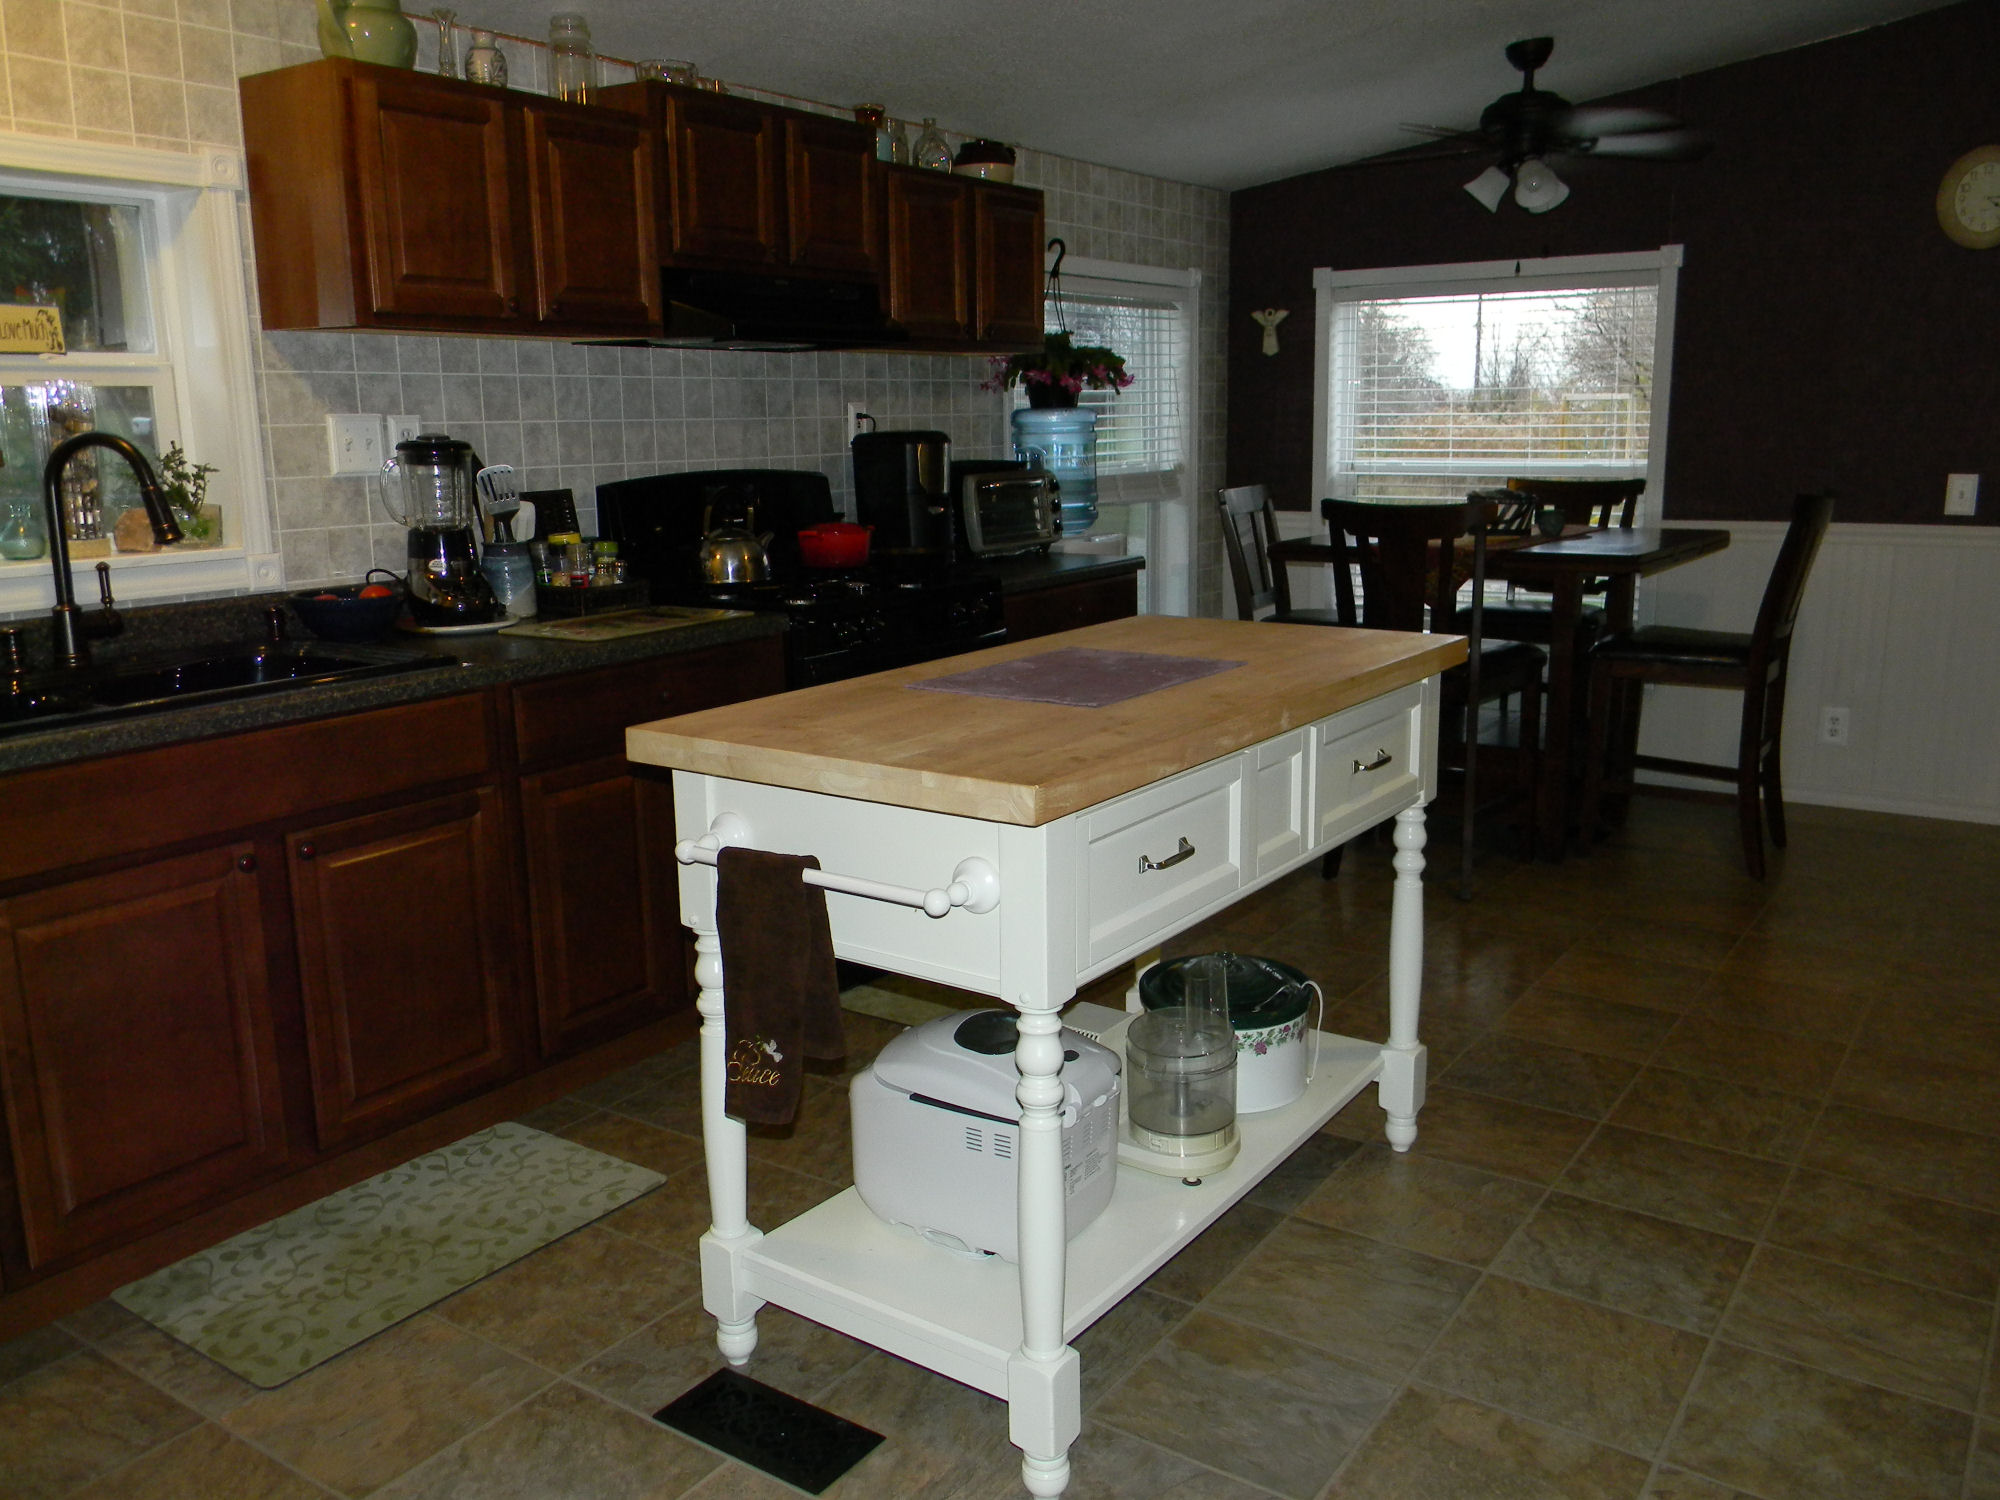 Mobile Home Kitchen Remodel My Mobile Home Makeover - Remodeling a mobile home kitchen